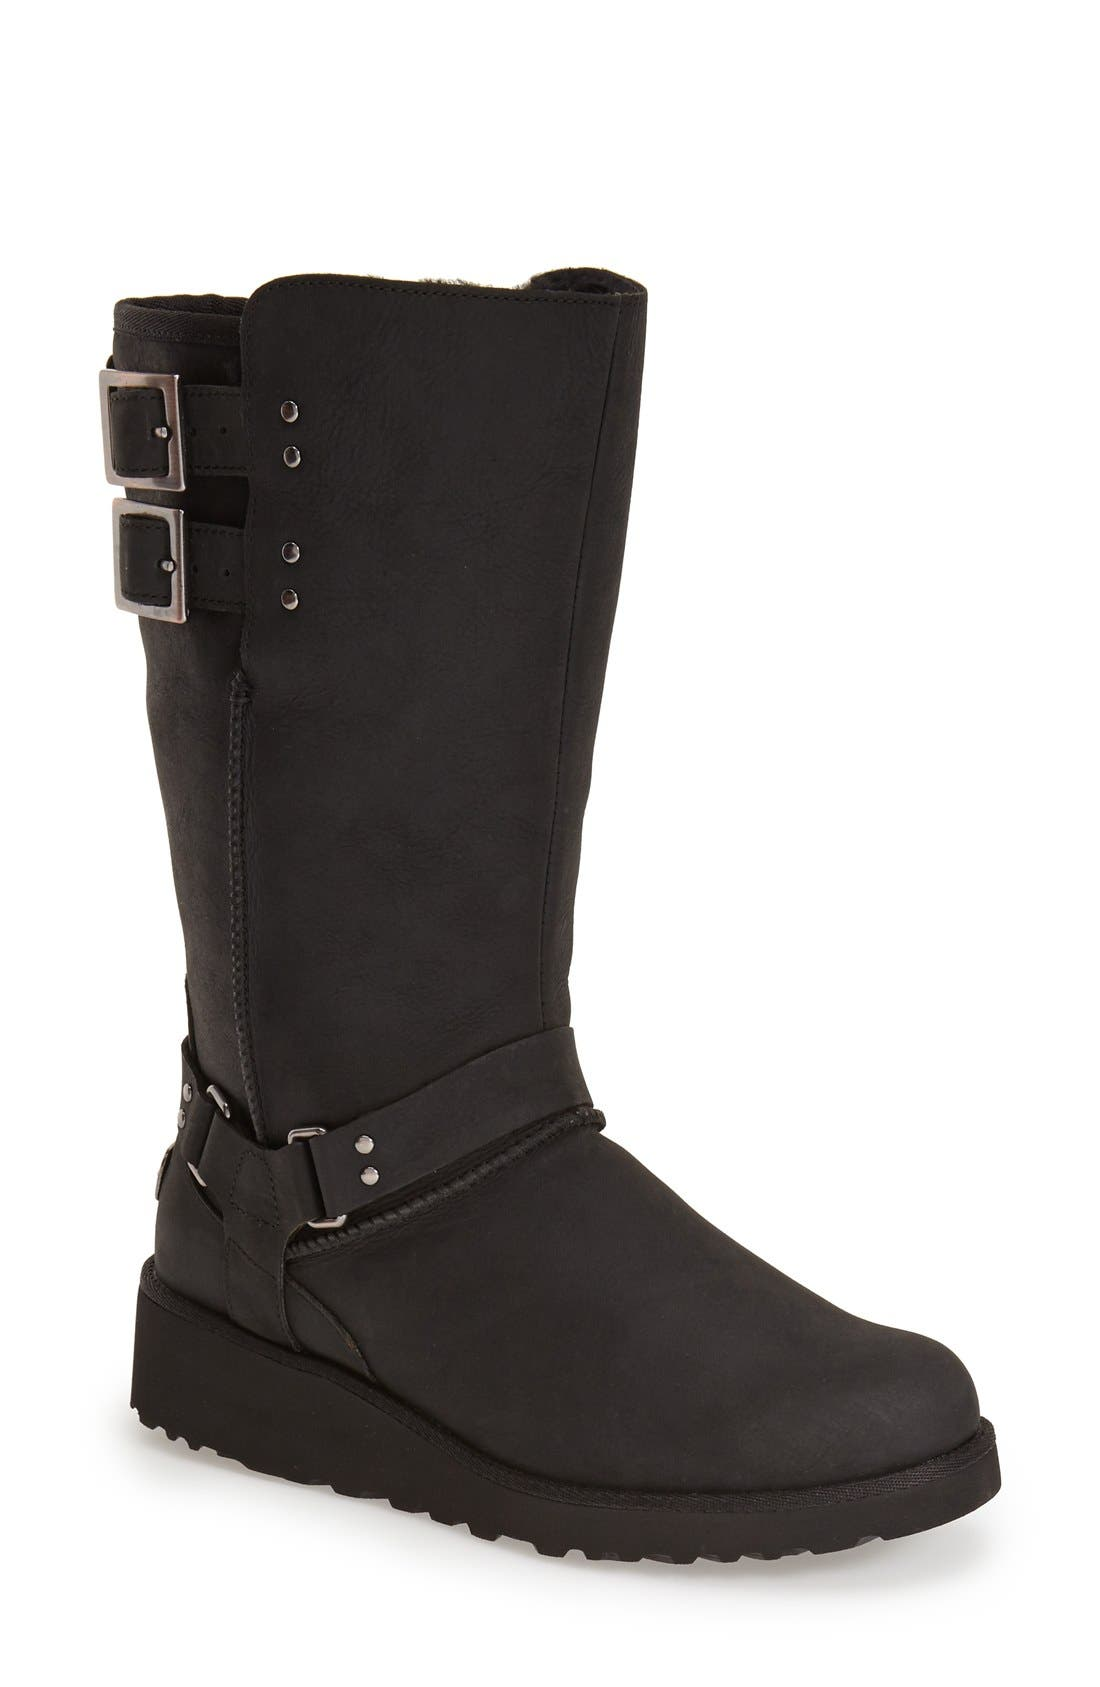 'Jasper' Water Resistant Boot,                             Main thumbnail 1, color,                             Black Leather